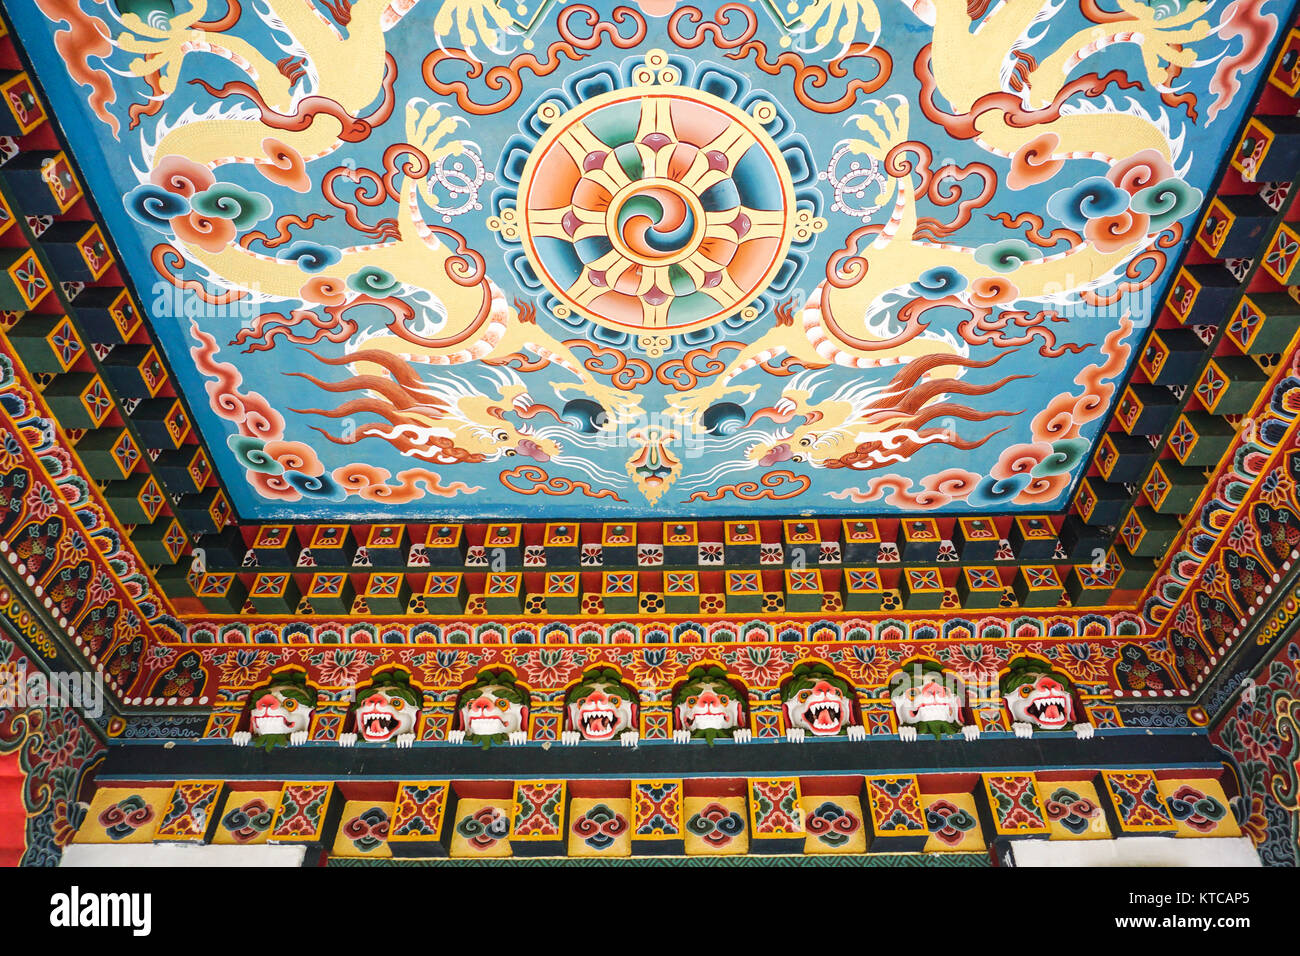 Inside of the traditional Bhutanese Buddhist temple in Bodhgaya, India. Bodh Gaya is the most revered of all Buddhist - Stock Image